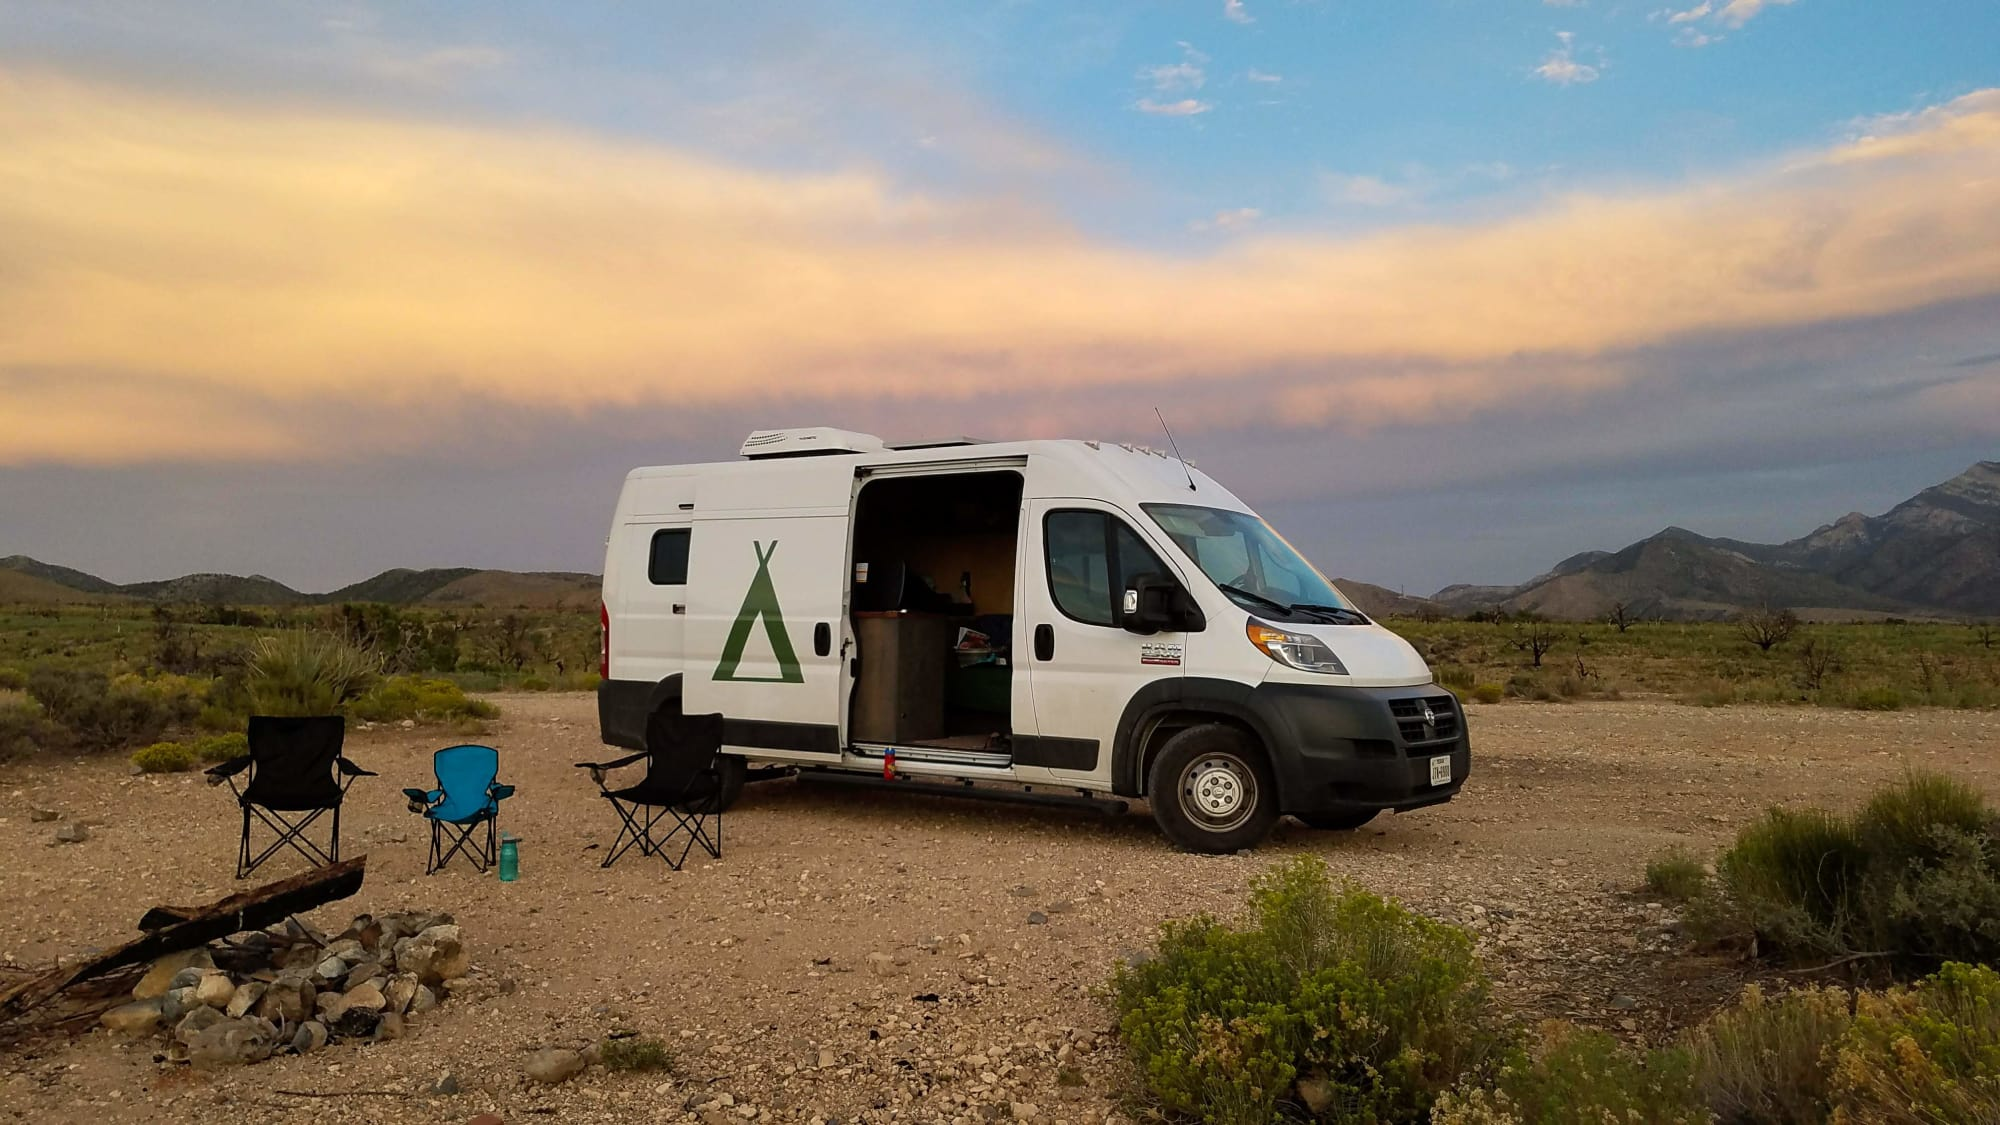 A Helpful Checklist With RV Safety Tips Before Going On The Road